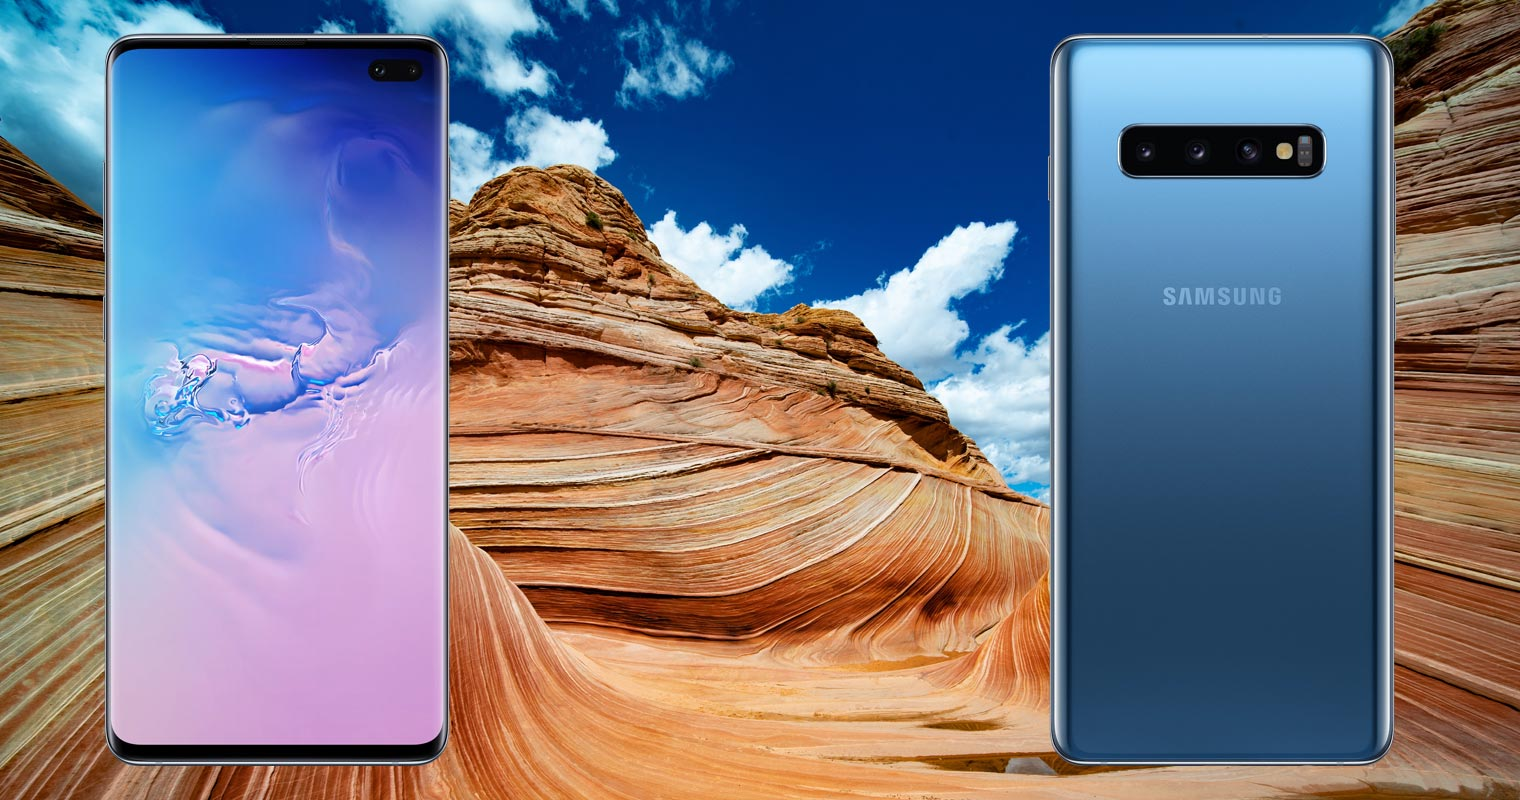 Samsung Galaxy S10 Plus with Red Sand Mountain Background